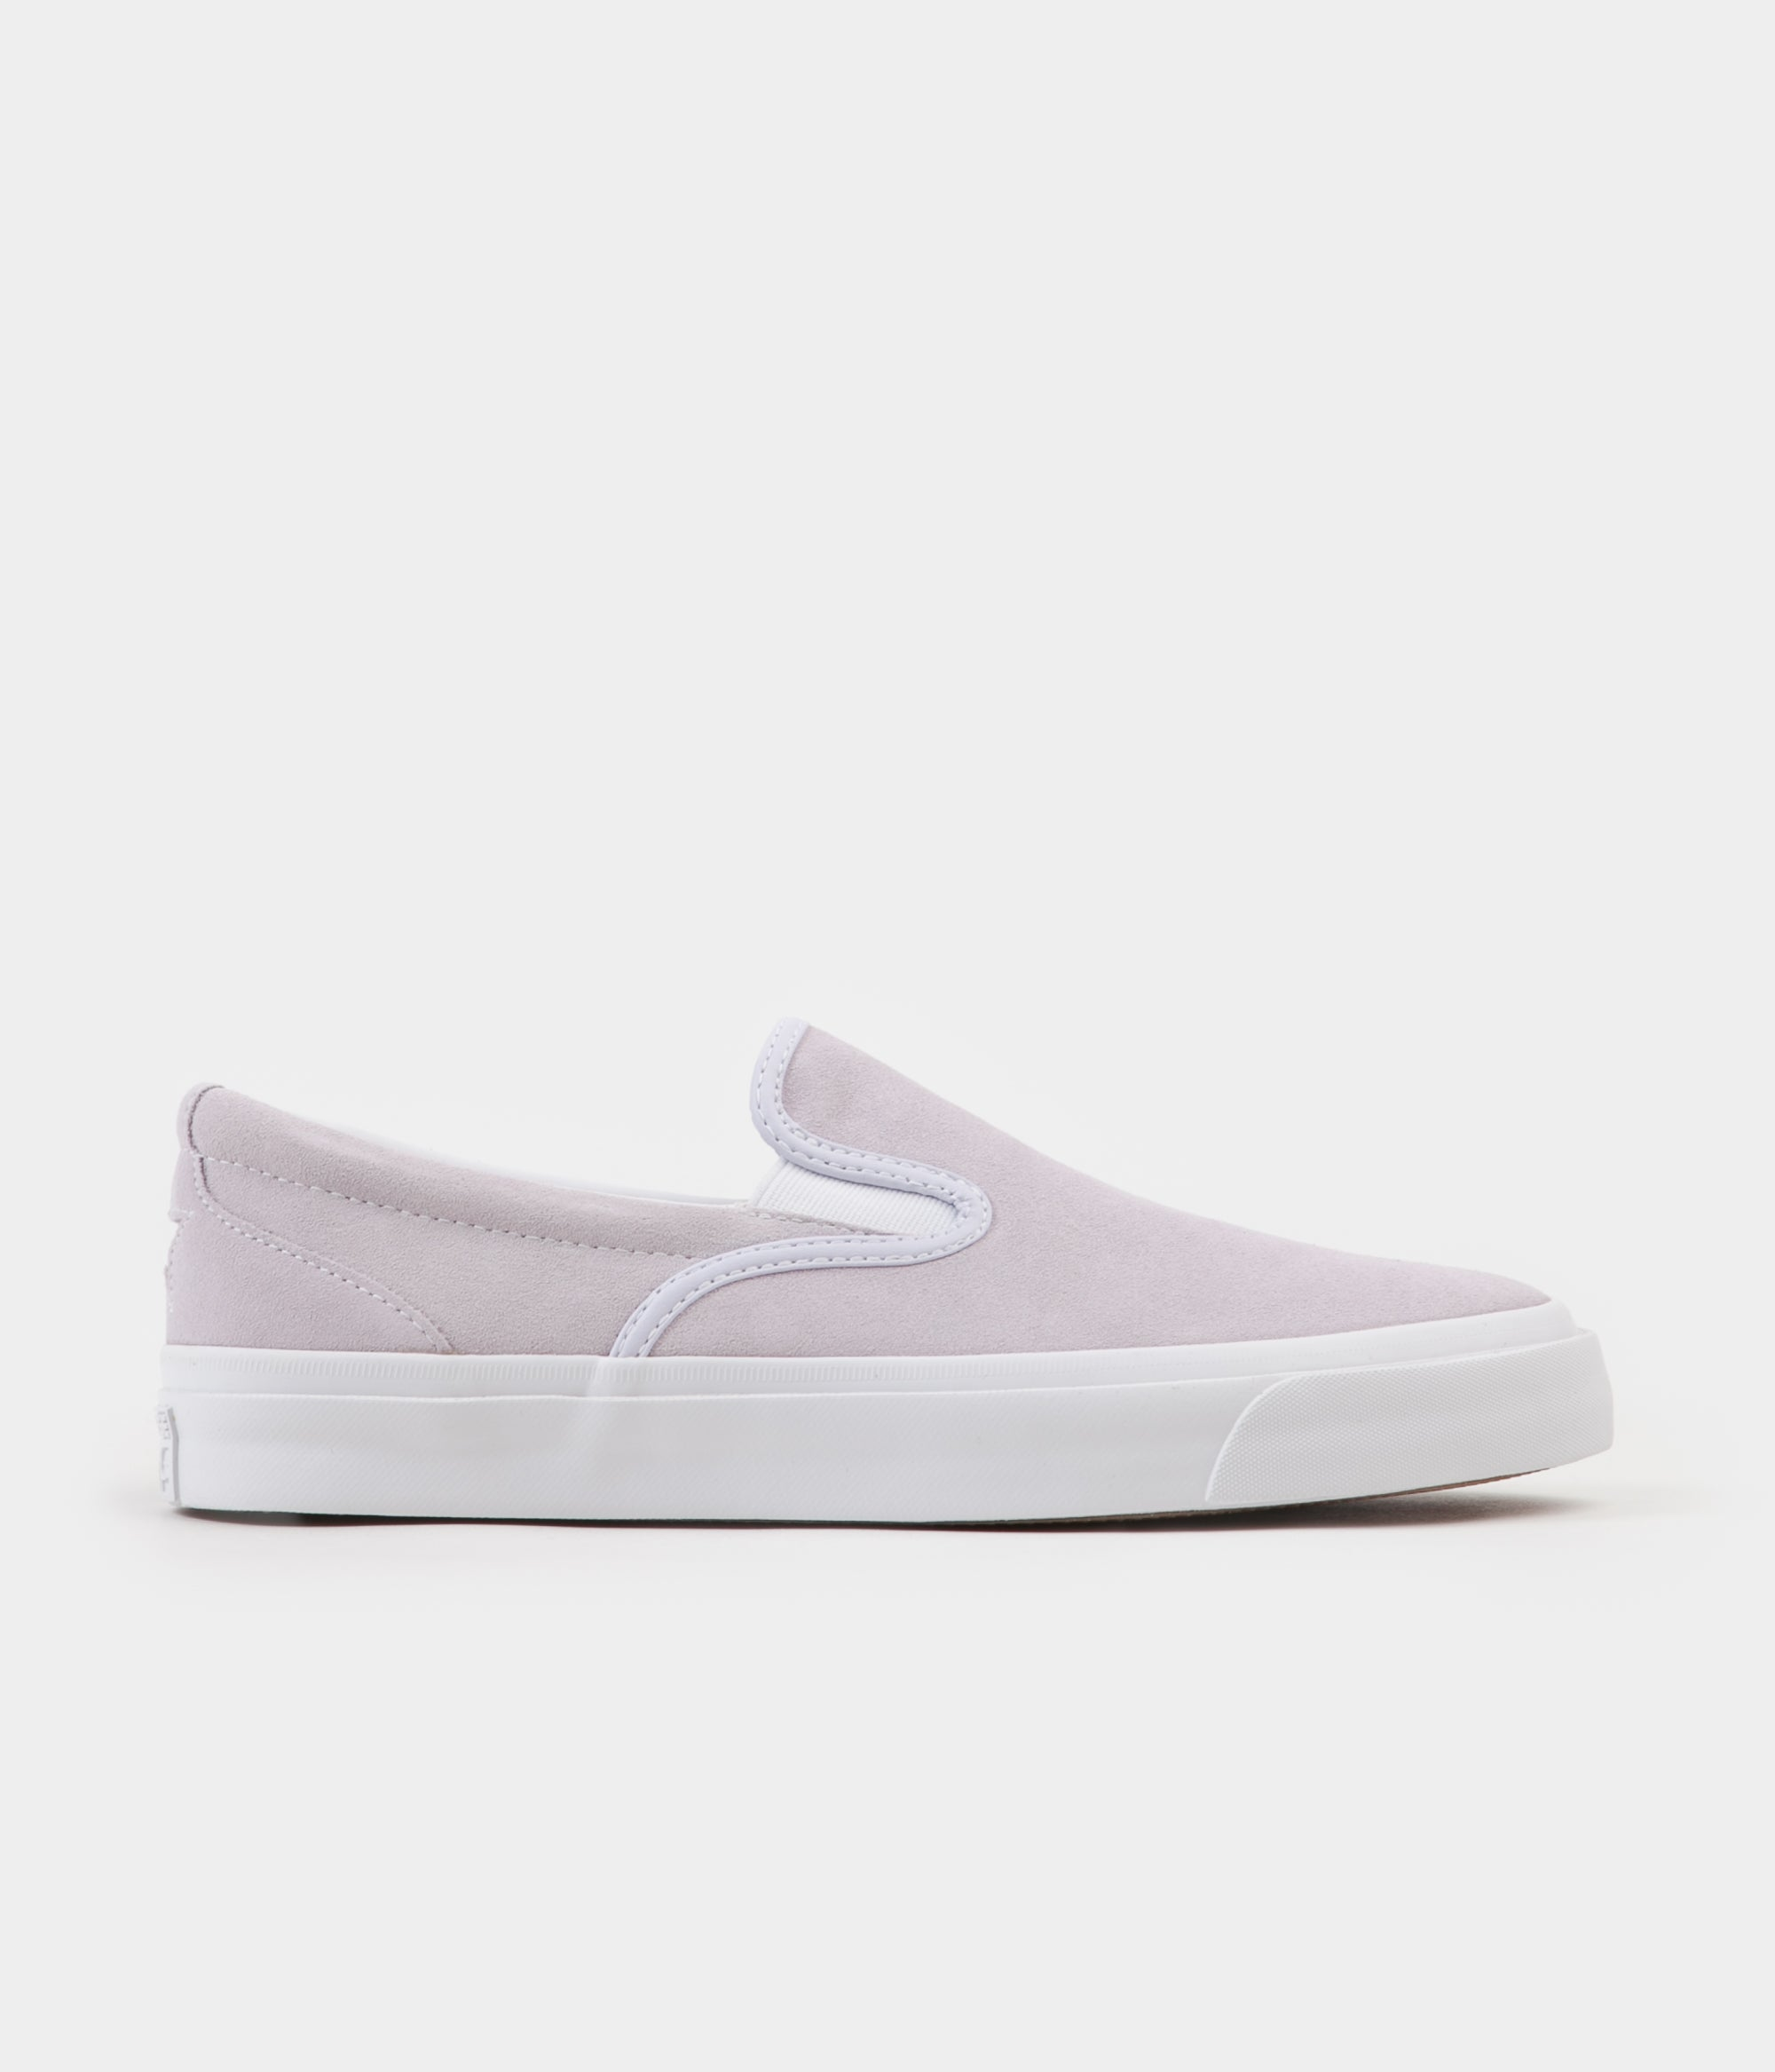 Converse One Star CC Slip On Shoes - Barely Grape   White   White ... 532c3463c